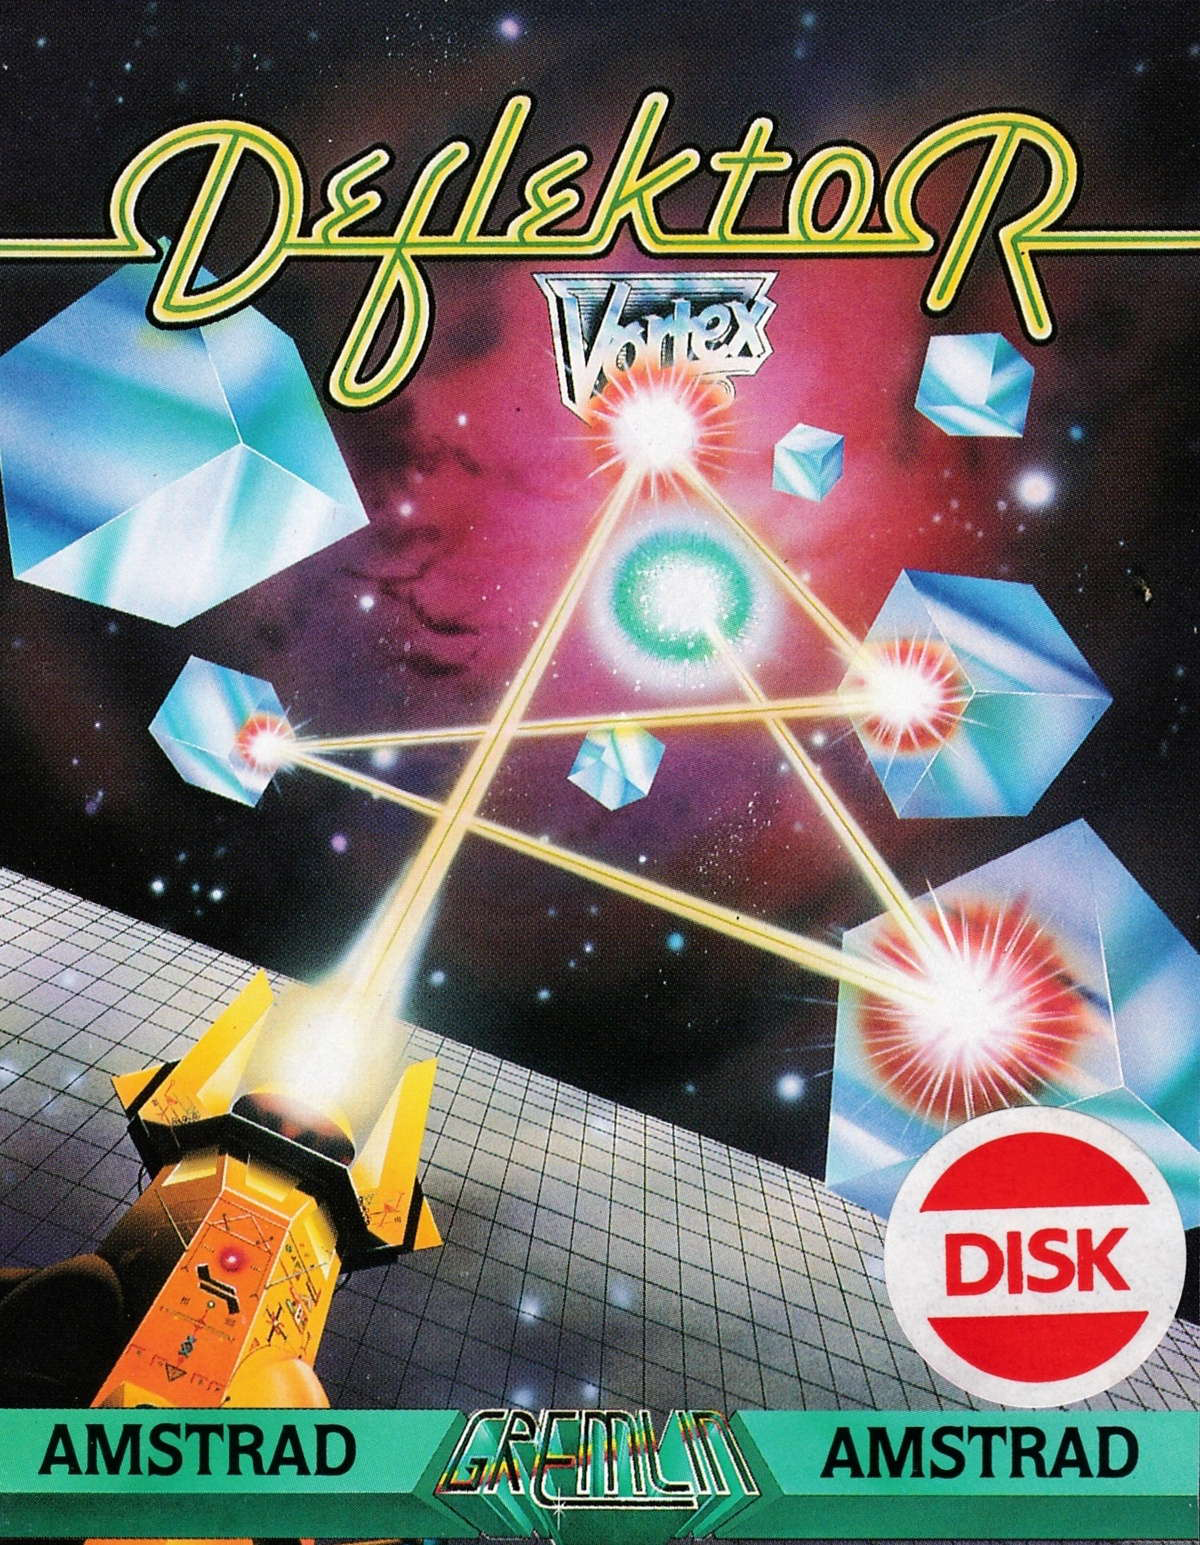 cover of the Amstrad CPC game Deflektor  by GameBase CPC